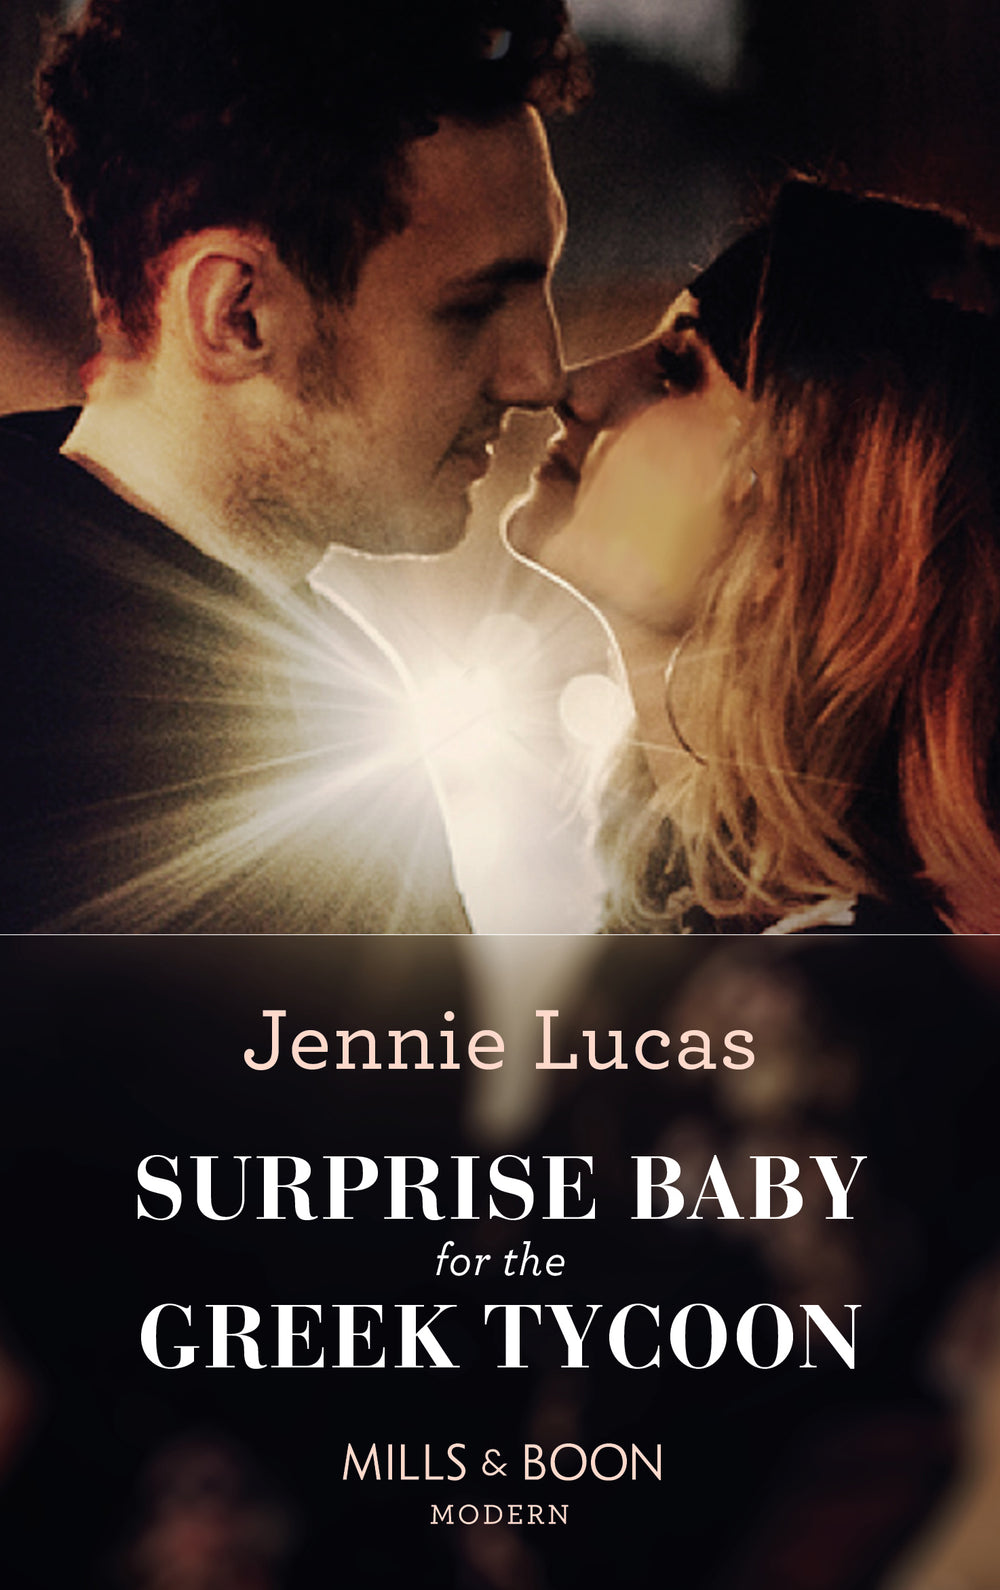 Surprise Baby for the Greek Tycoon - Chapter 7